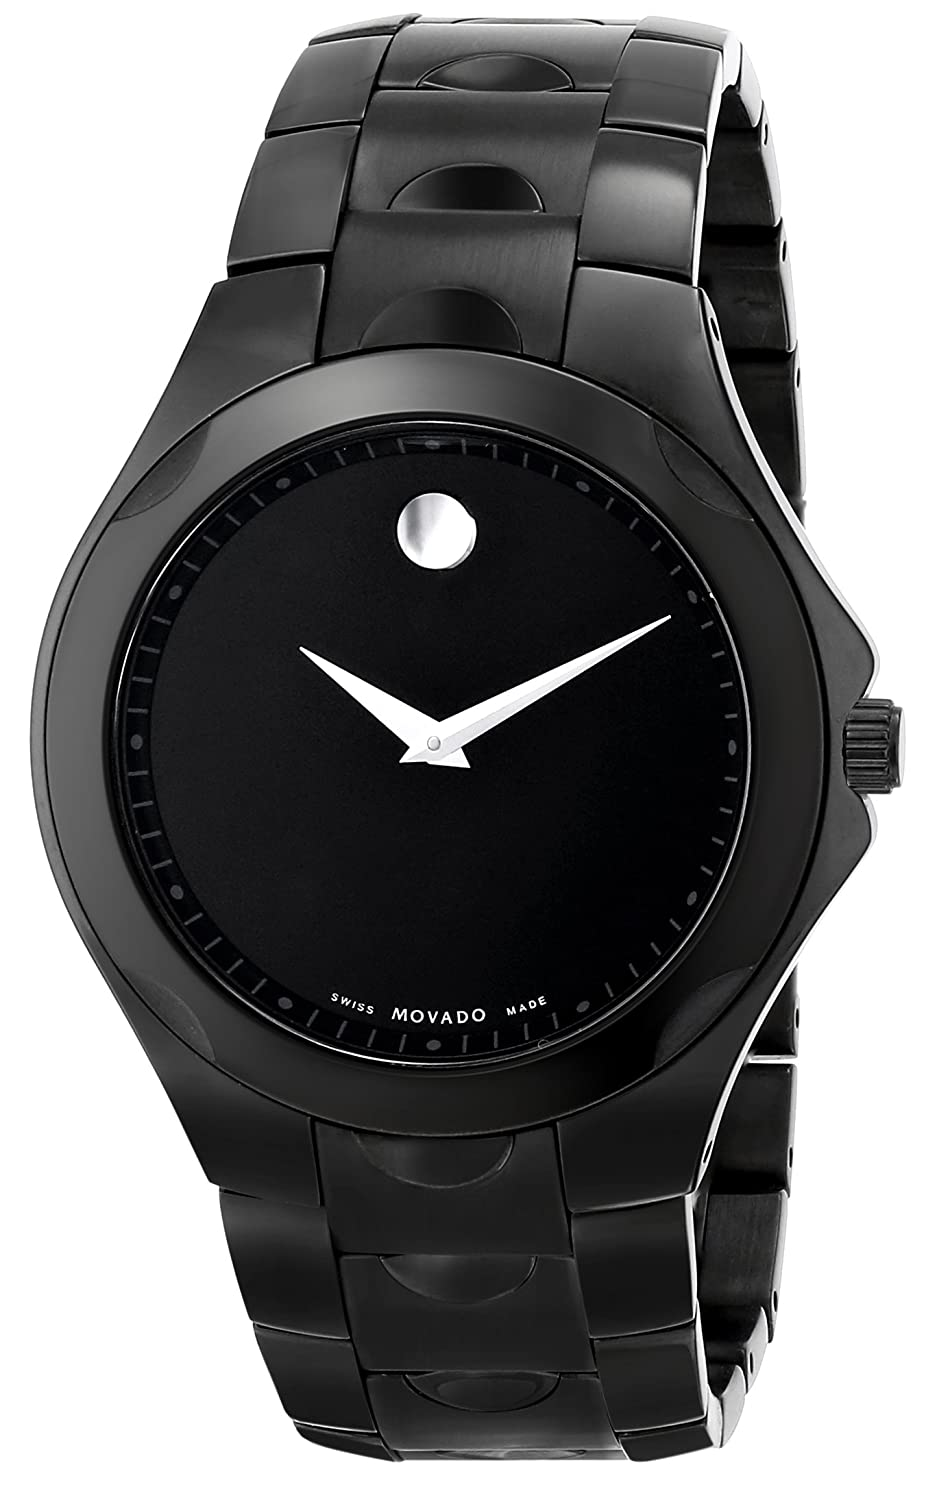 luno black watches adjusters tuxedo page men brands quartz inventory mens top watch bracelet movado sapphire s swiss